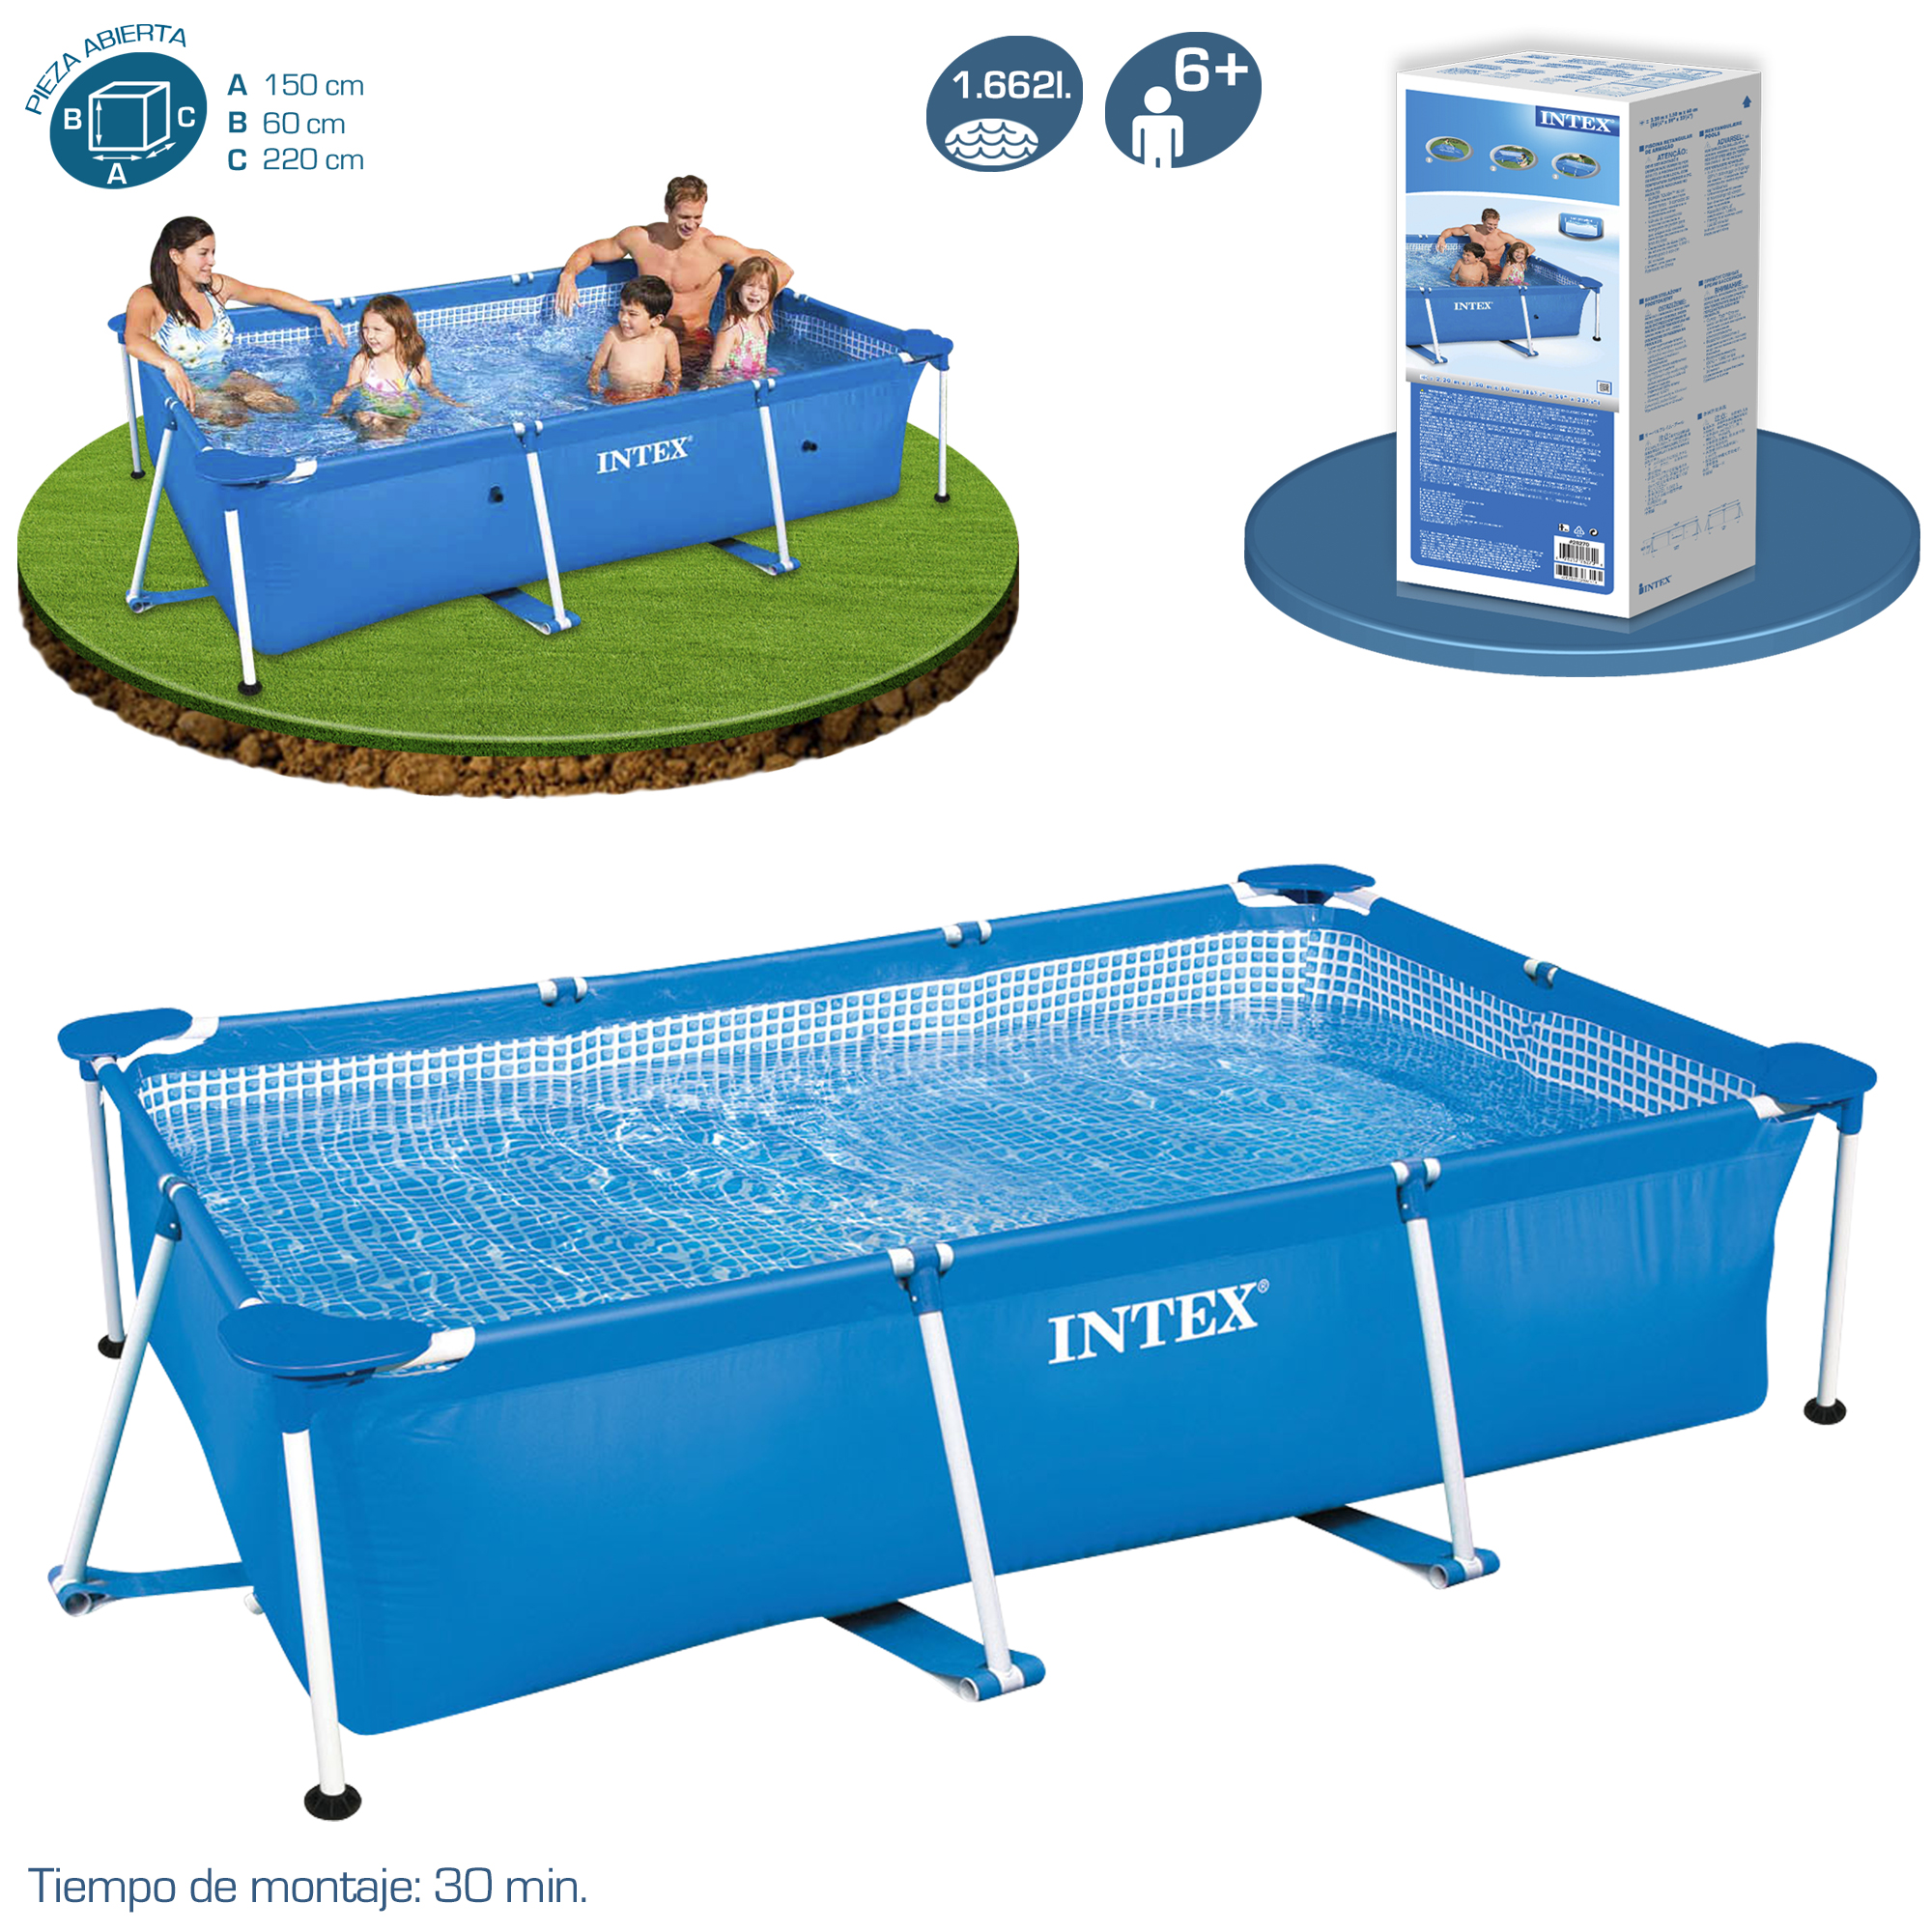 Piscina intex small rectangular frame piscinas desmontables for Piscinas hinchables carrefour precios